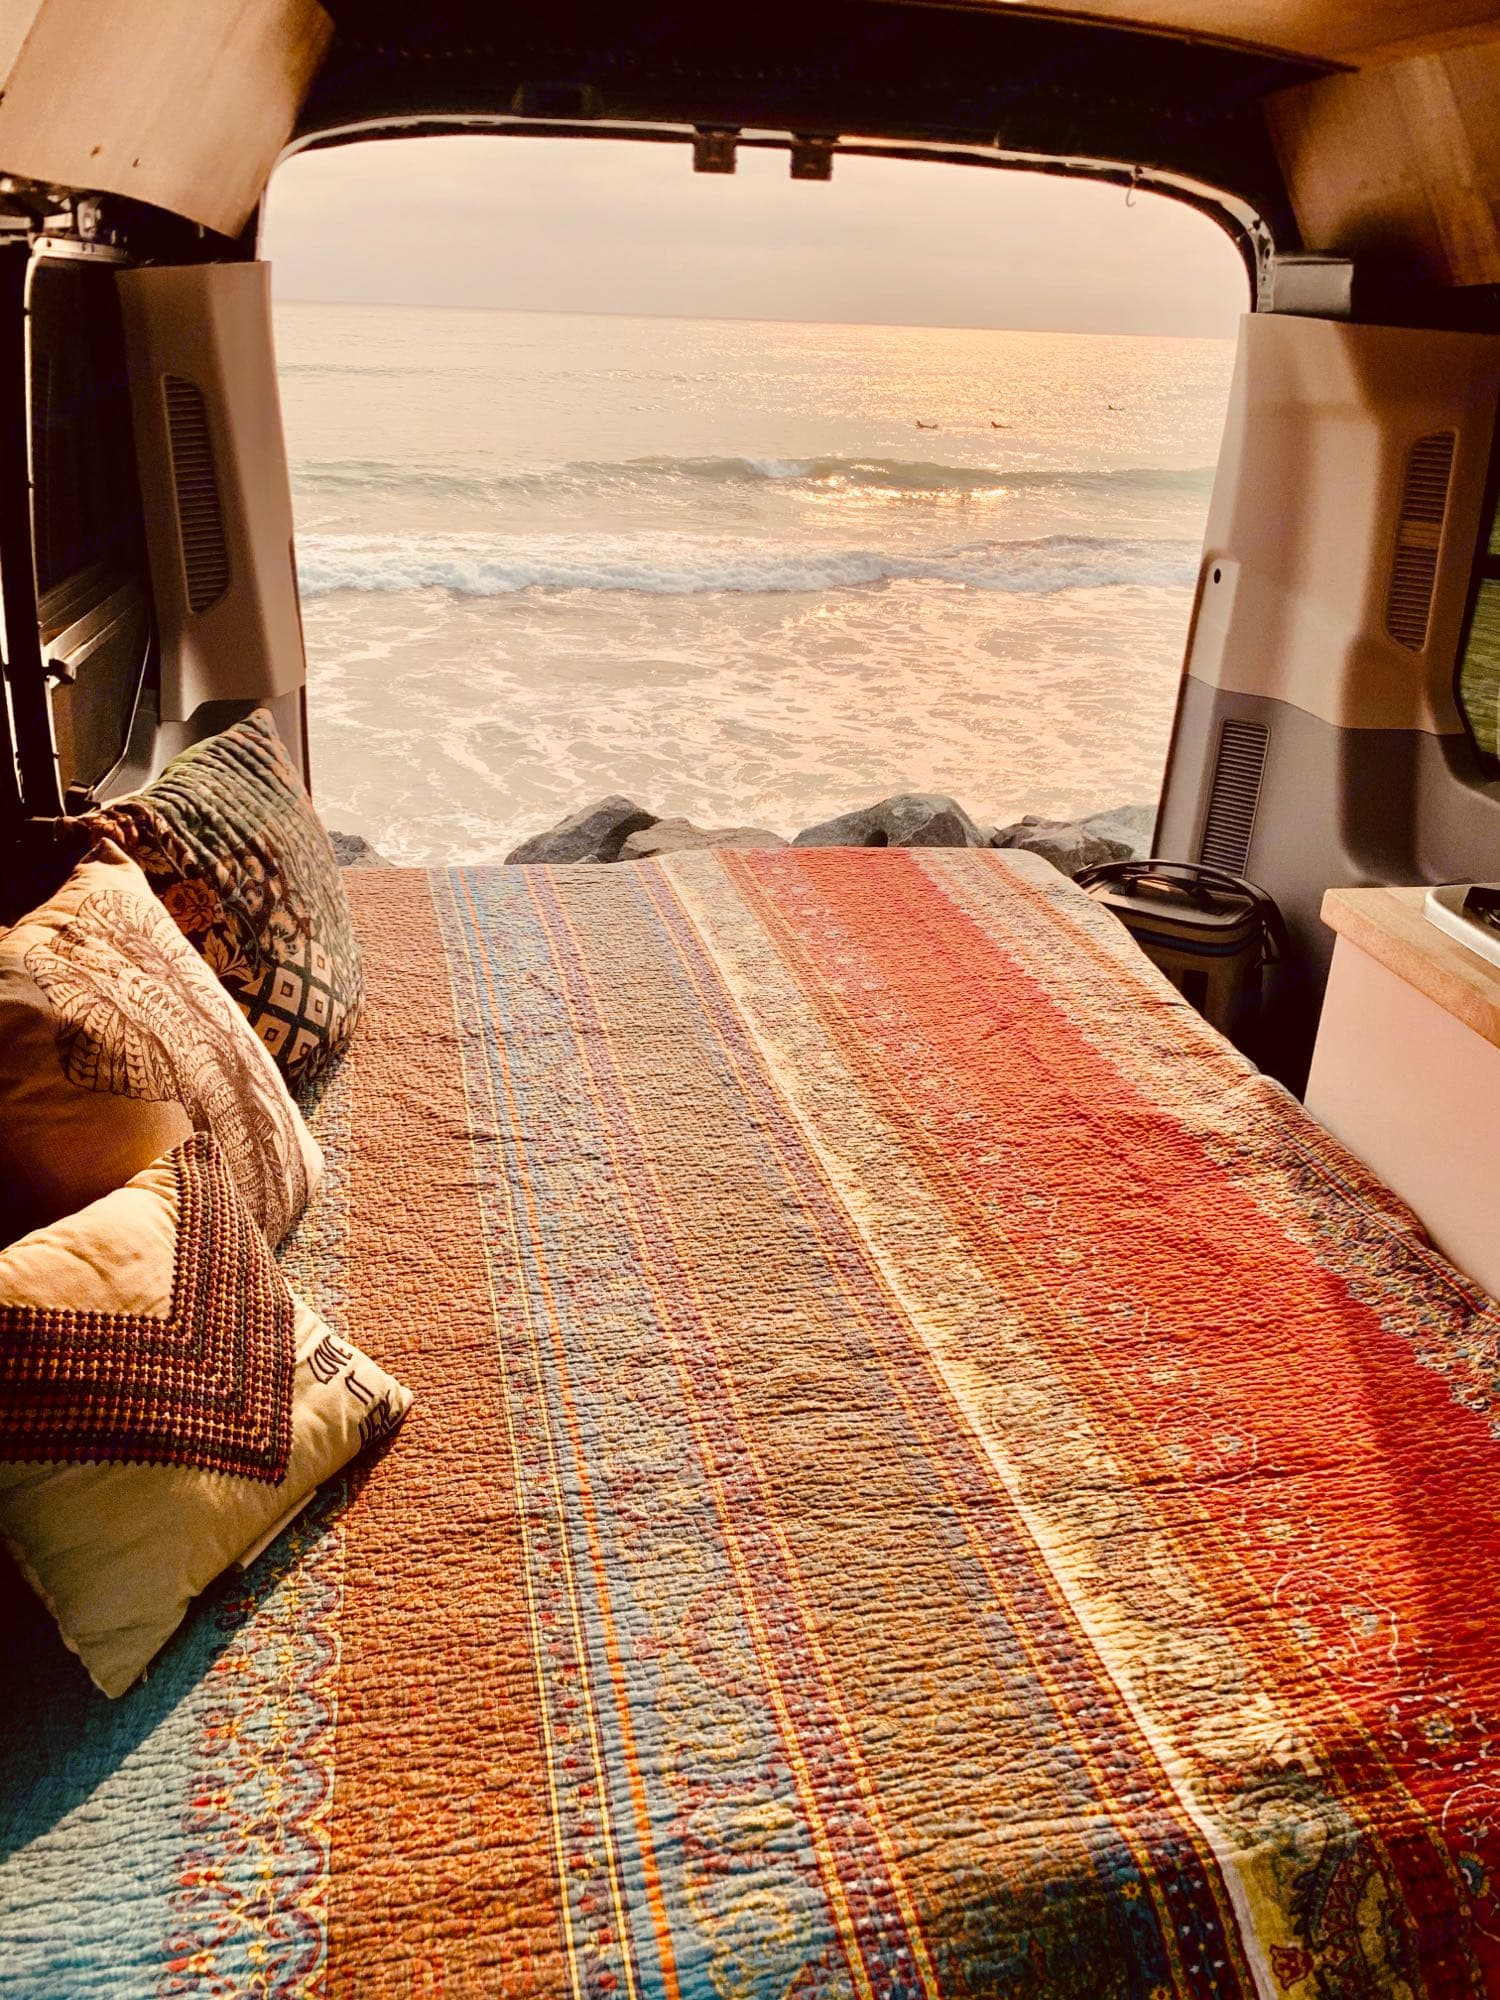 This is the view you can wake up to every morning! Plenty Of Room! Comfy Tempurpedic Mattress!. Ford Transit 350 XLT ECOBOOST 2020